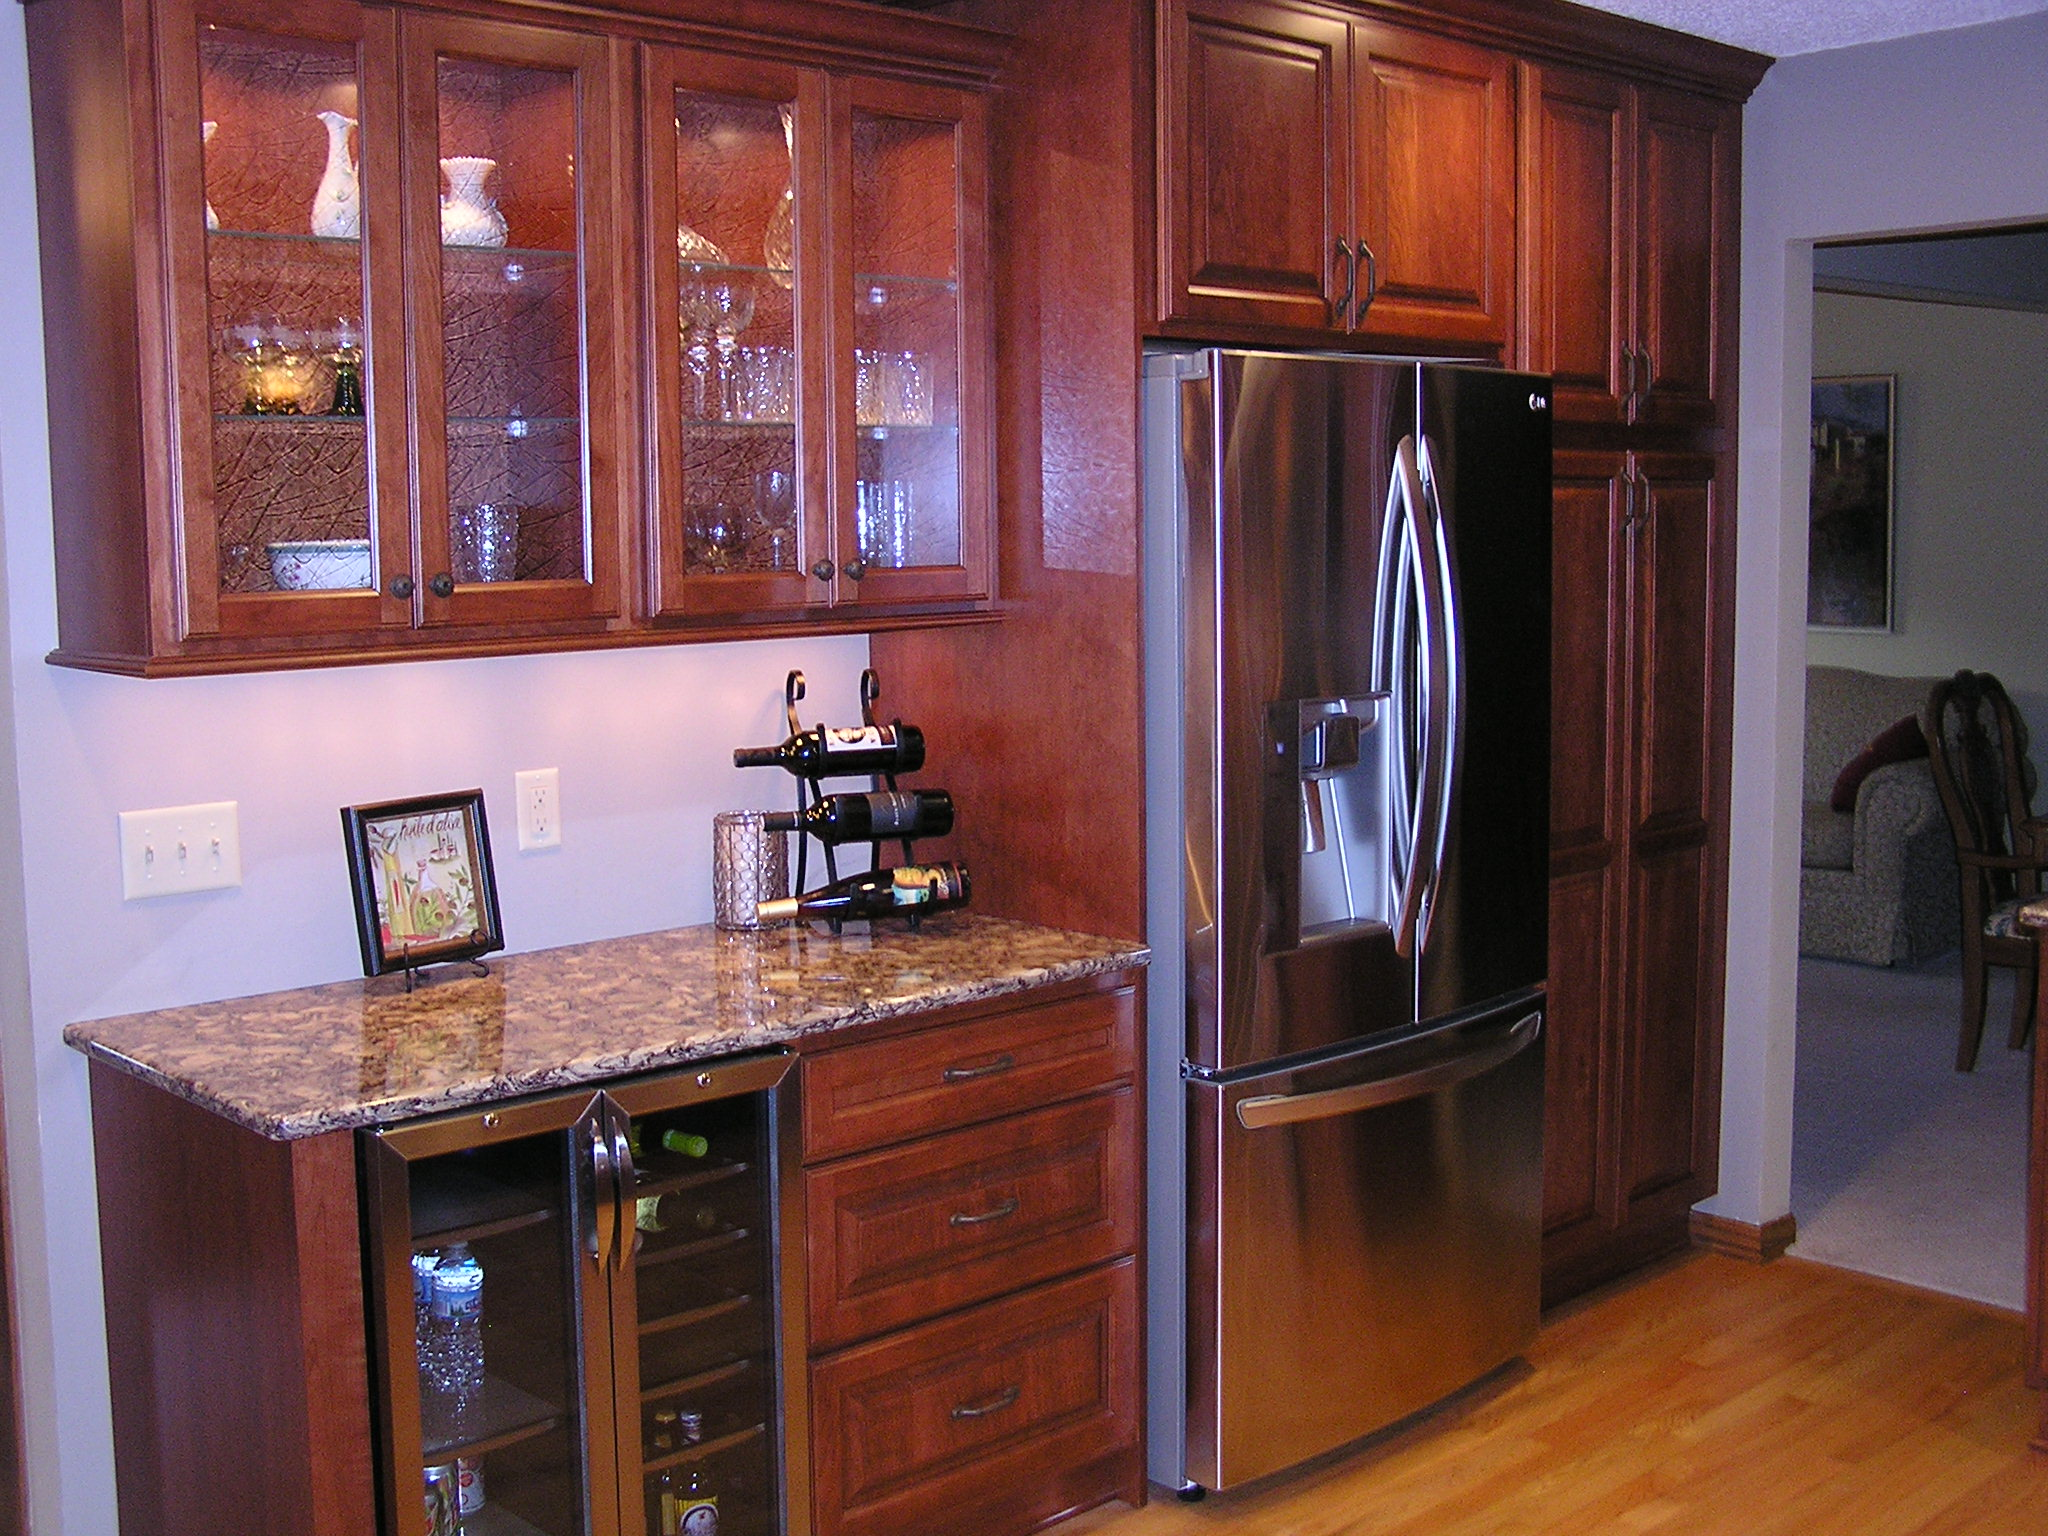 apple valley kitchen cabinets appliance packages costco remodel featuring cherry